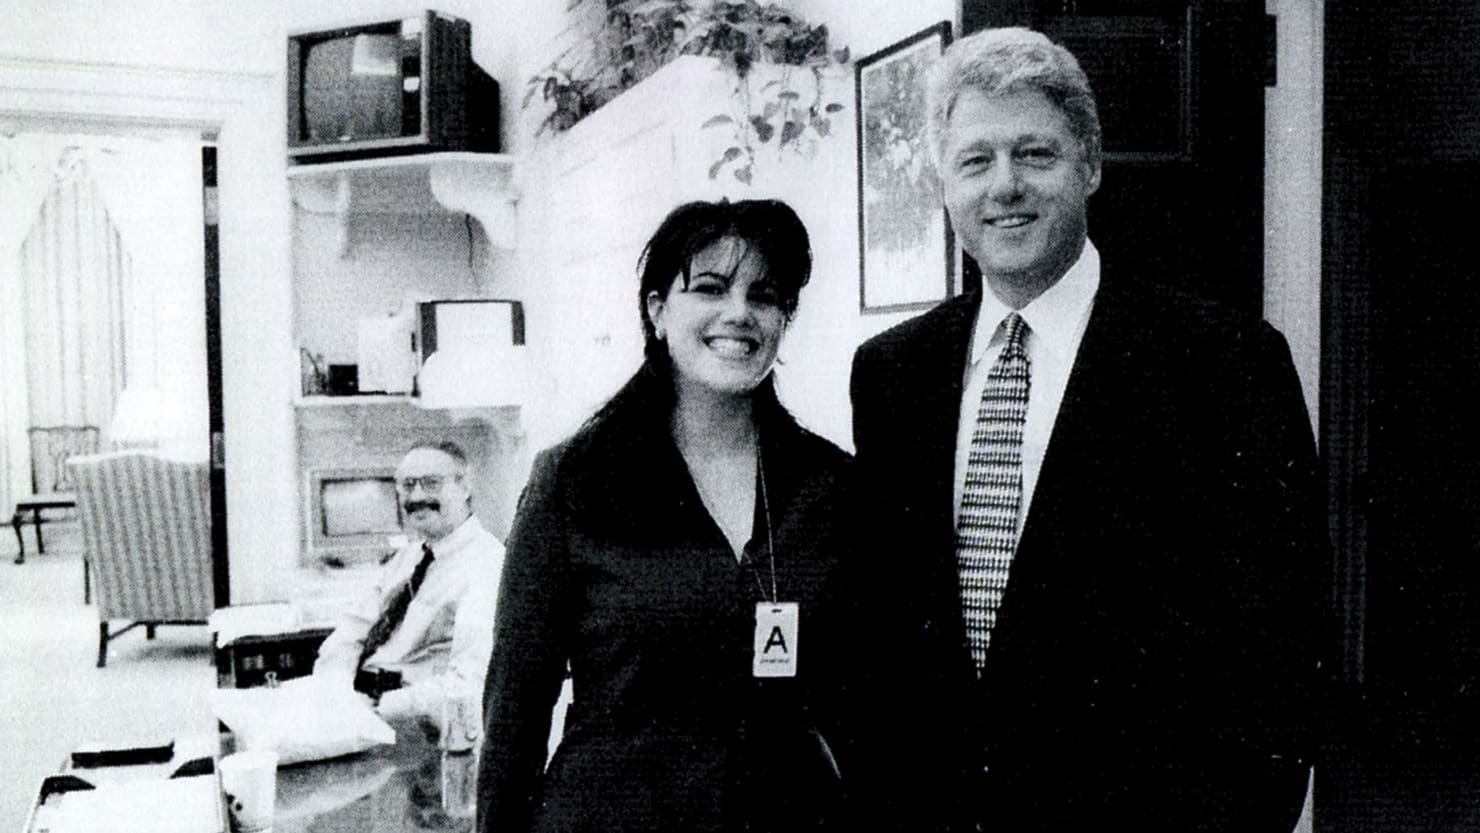 Lewinsky Sets the Record Straight on Clinton: 'I Was Completely at His Mercy'